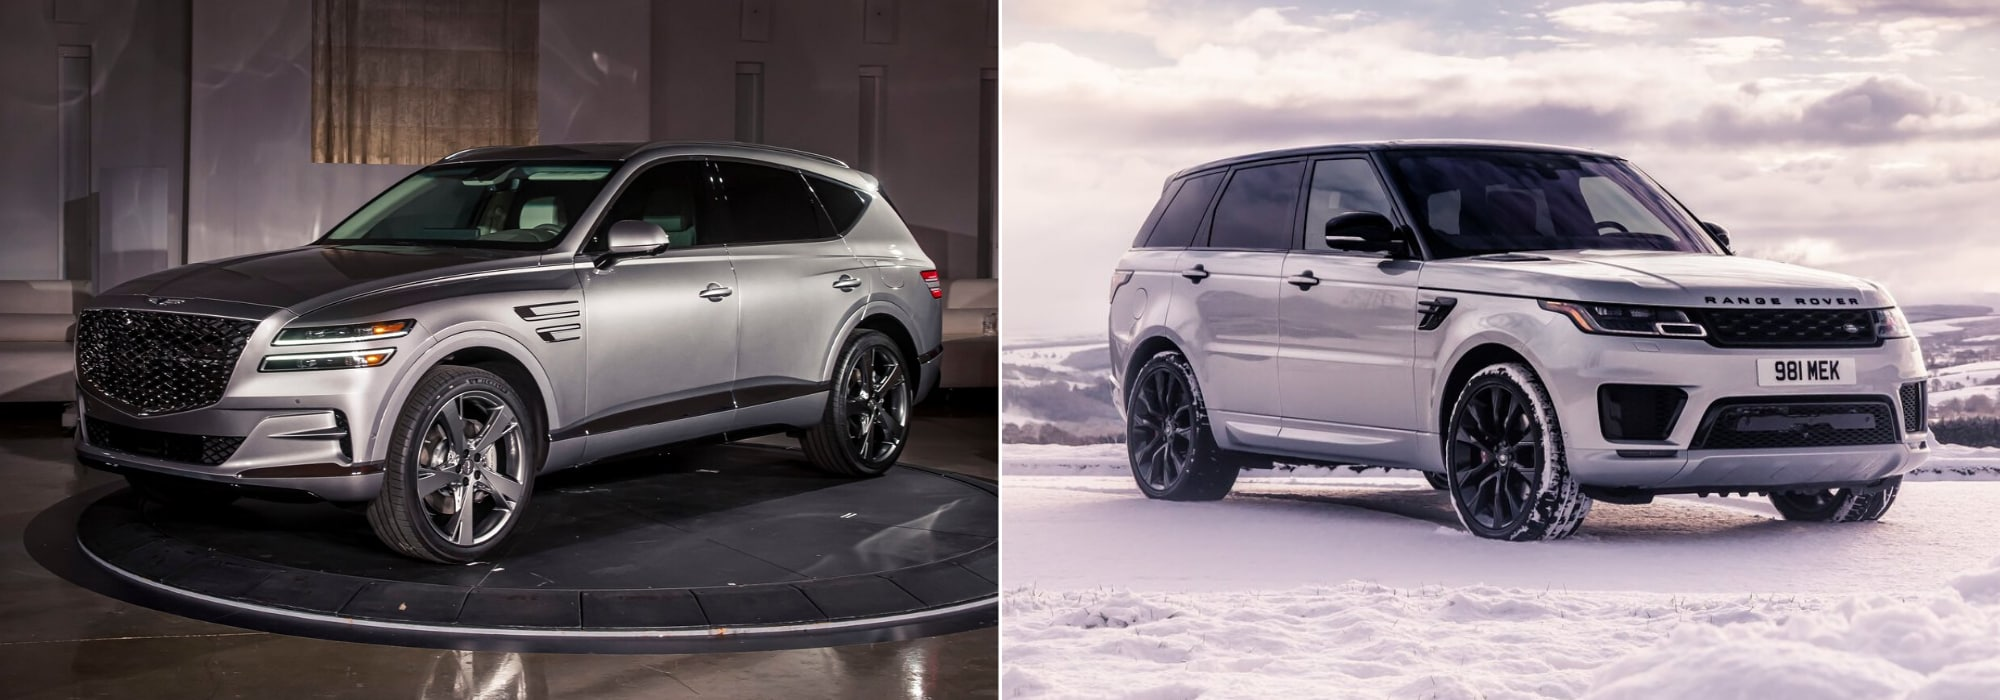 New 2021 Genesis GV80 Luxury SUV compared to the 2020 Range Rover Sport hero image